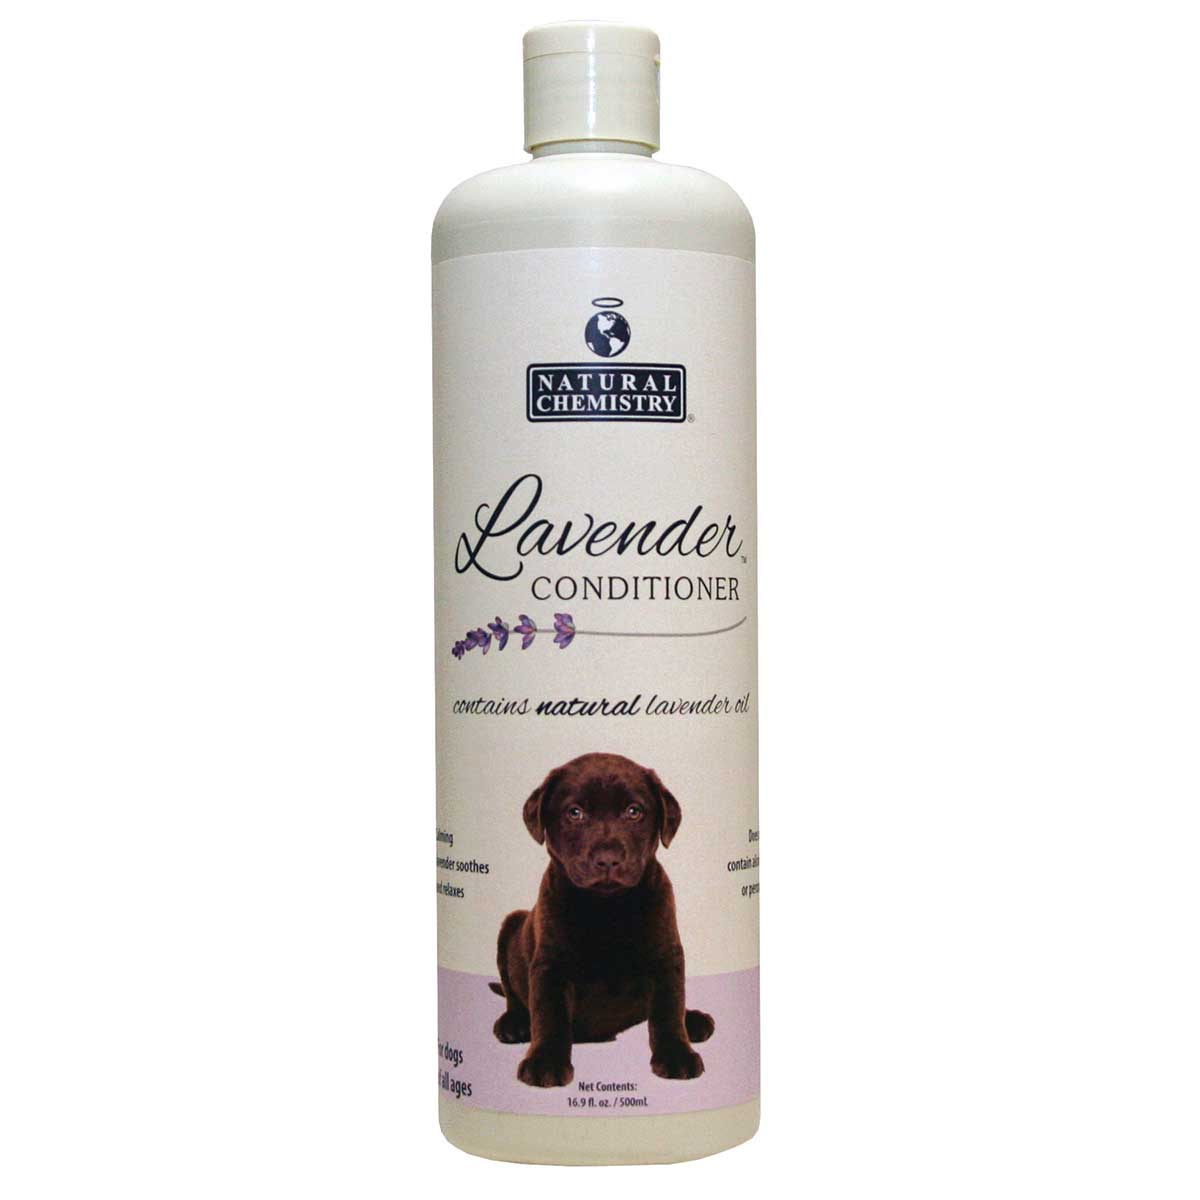 Natural Chemistry Lavender Conditioner for Dogs -16.9 oz available at Ryan's Pet Supplies